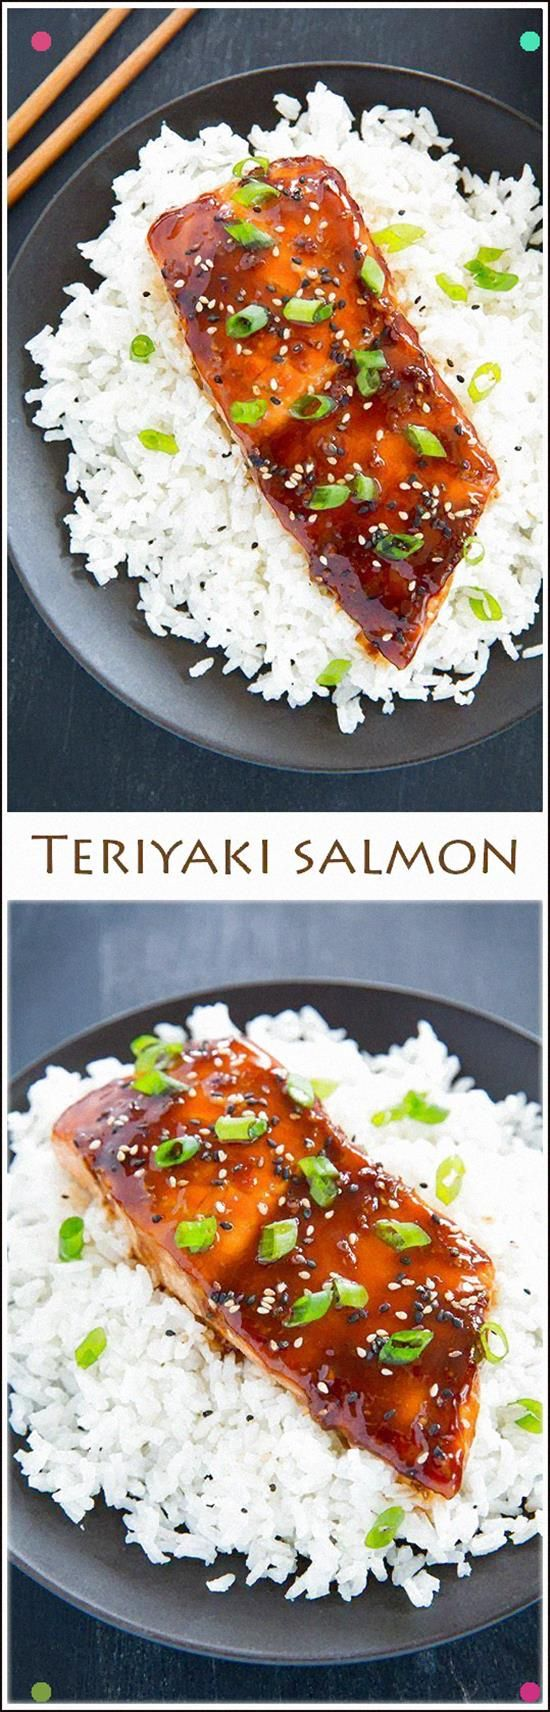 Teriyaki Salmon - This Salmon Is So Flavorful And Delicious The Teriyaki Sauce Is Great On Chicken Too #teriyakisalmon